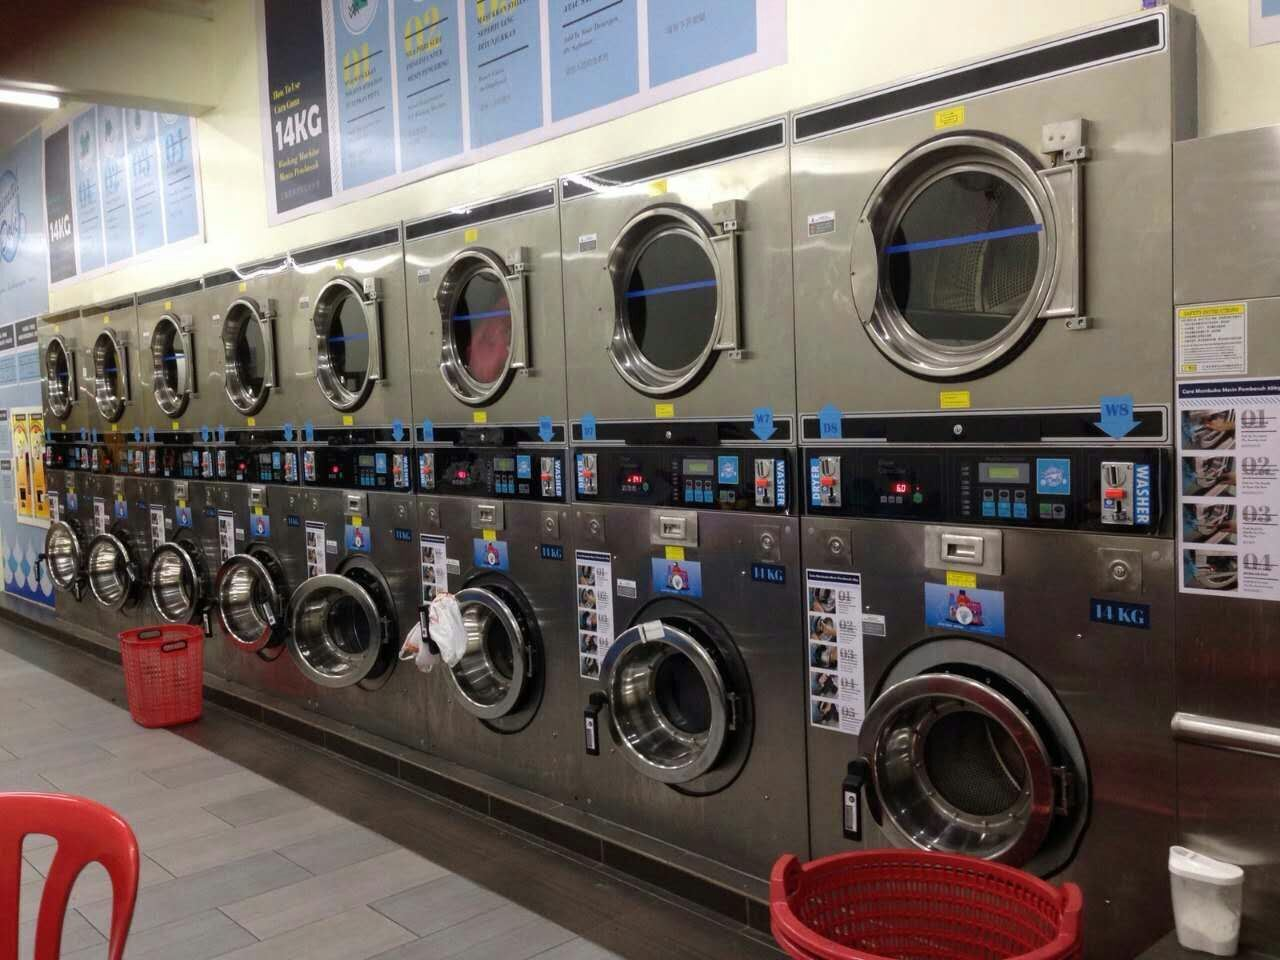 commercial double stack washer dryer combo all in one - Washer Dryer Combo All In One